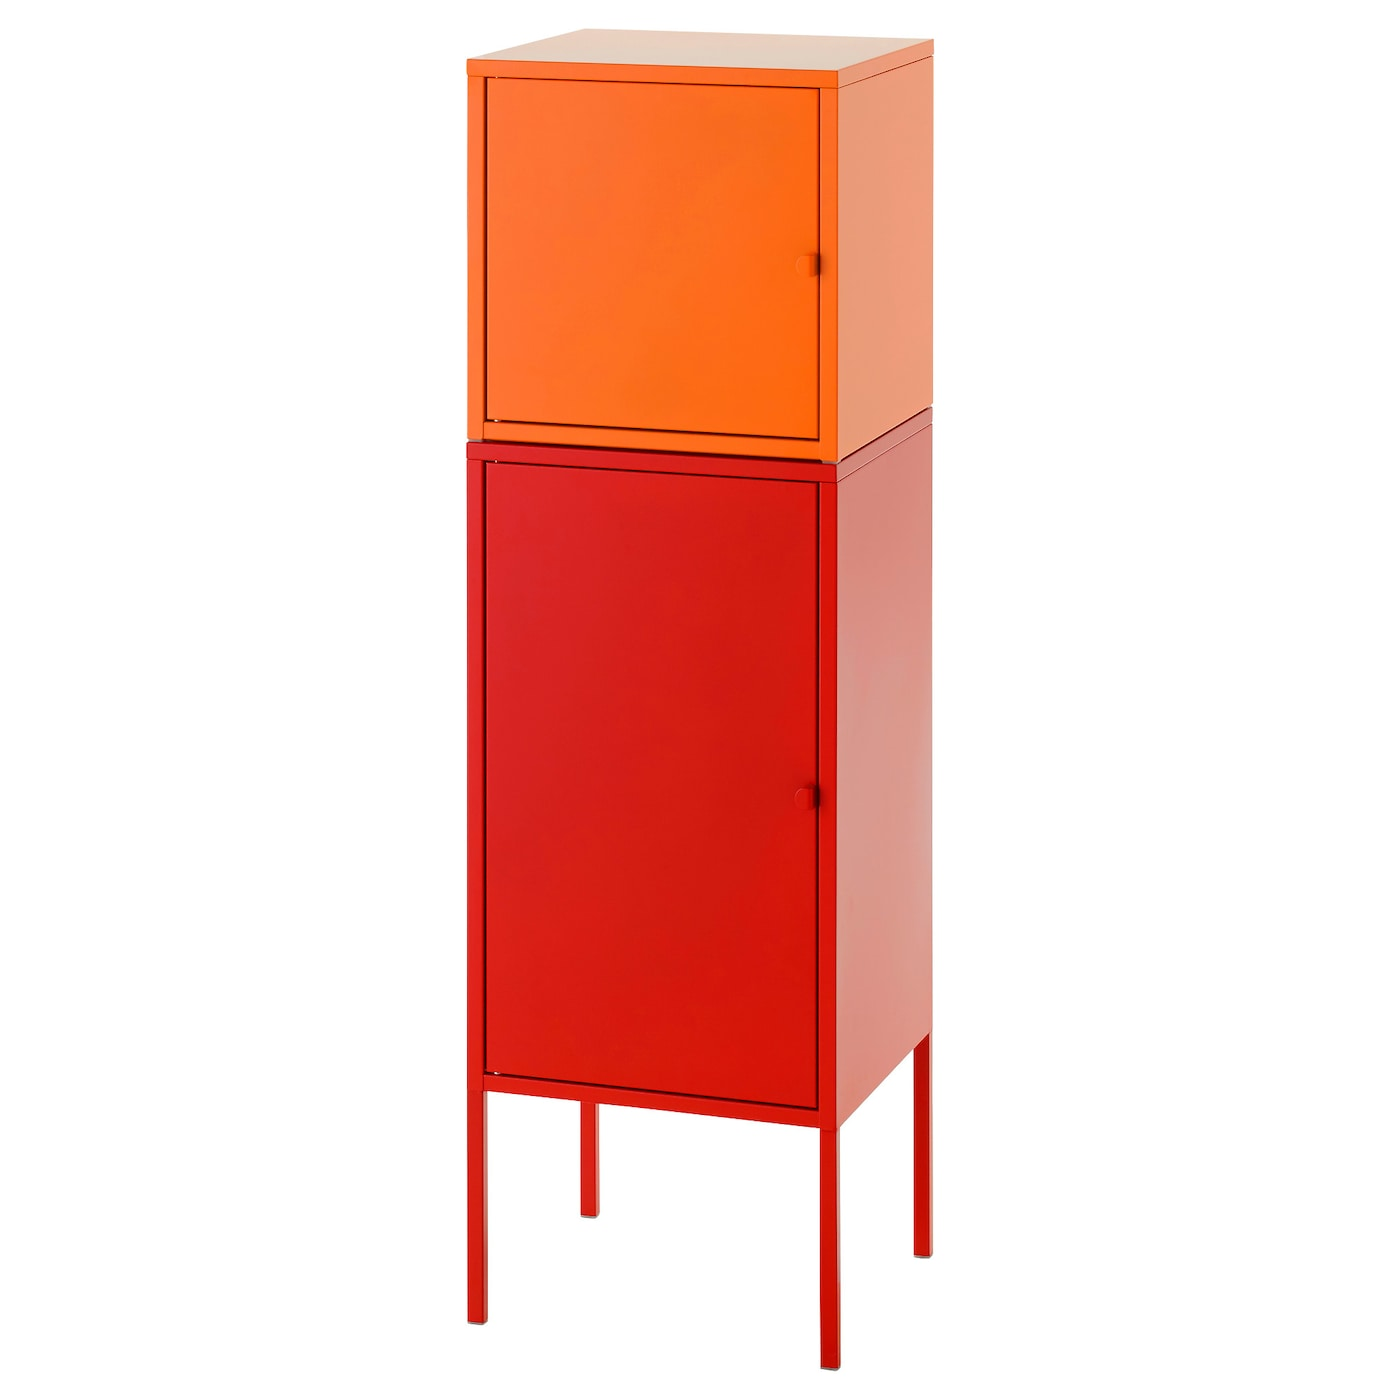 LIXHULT Storage combination Redorange 35×117 cm  IKEA